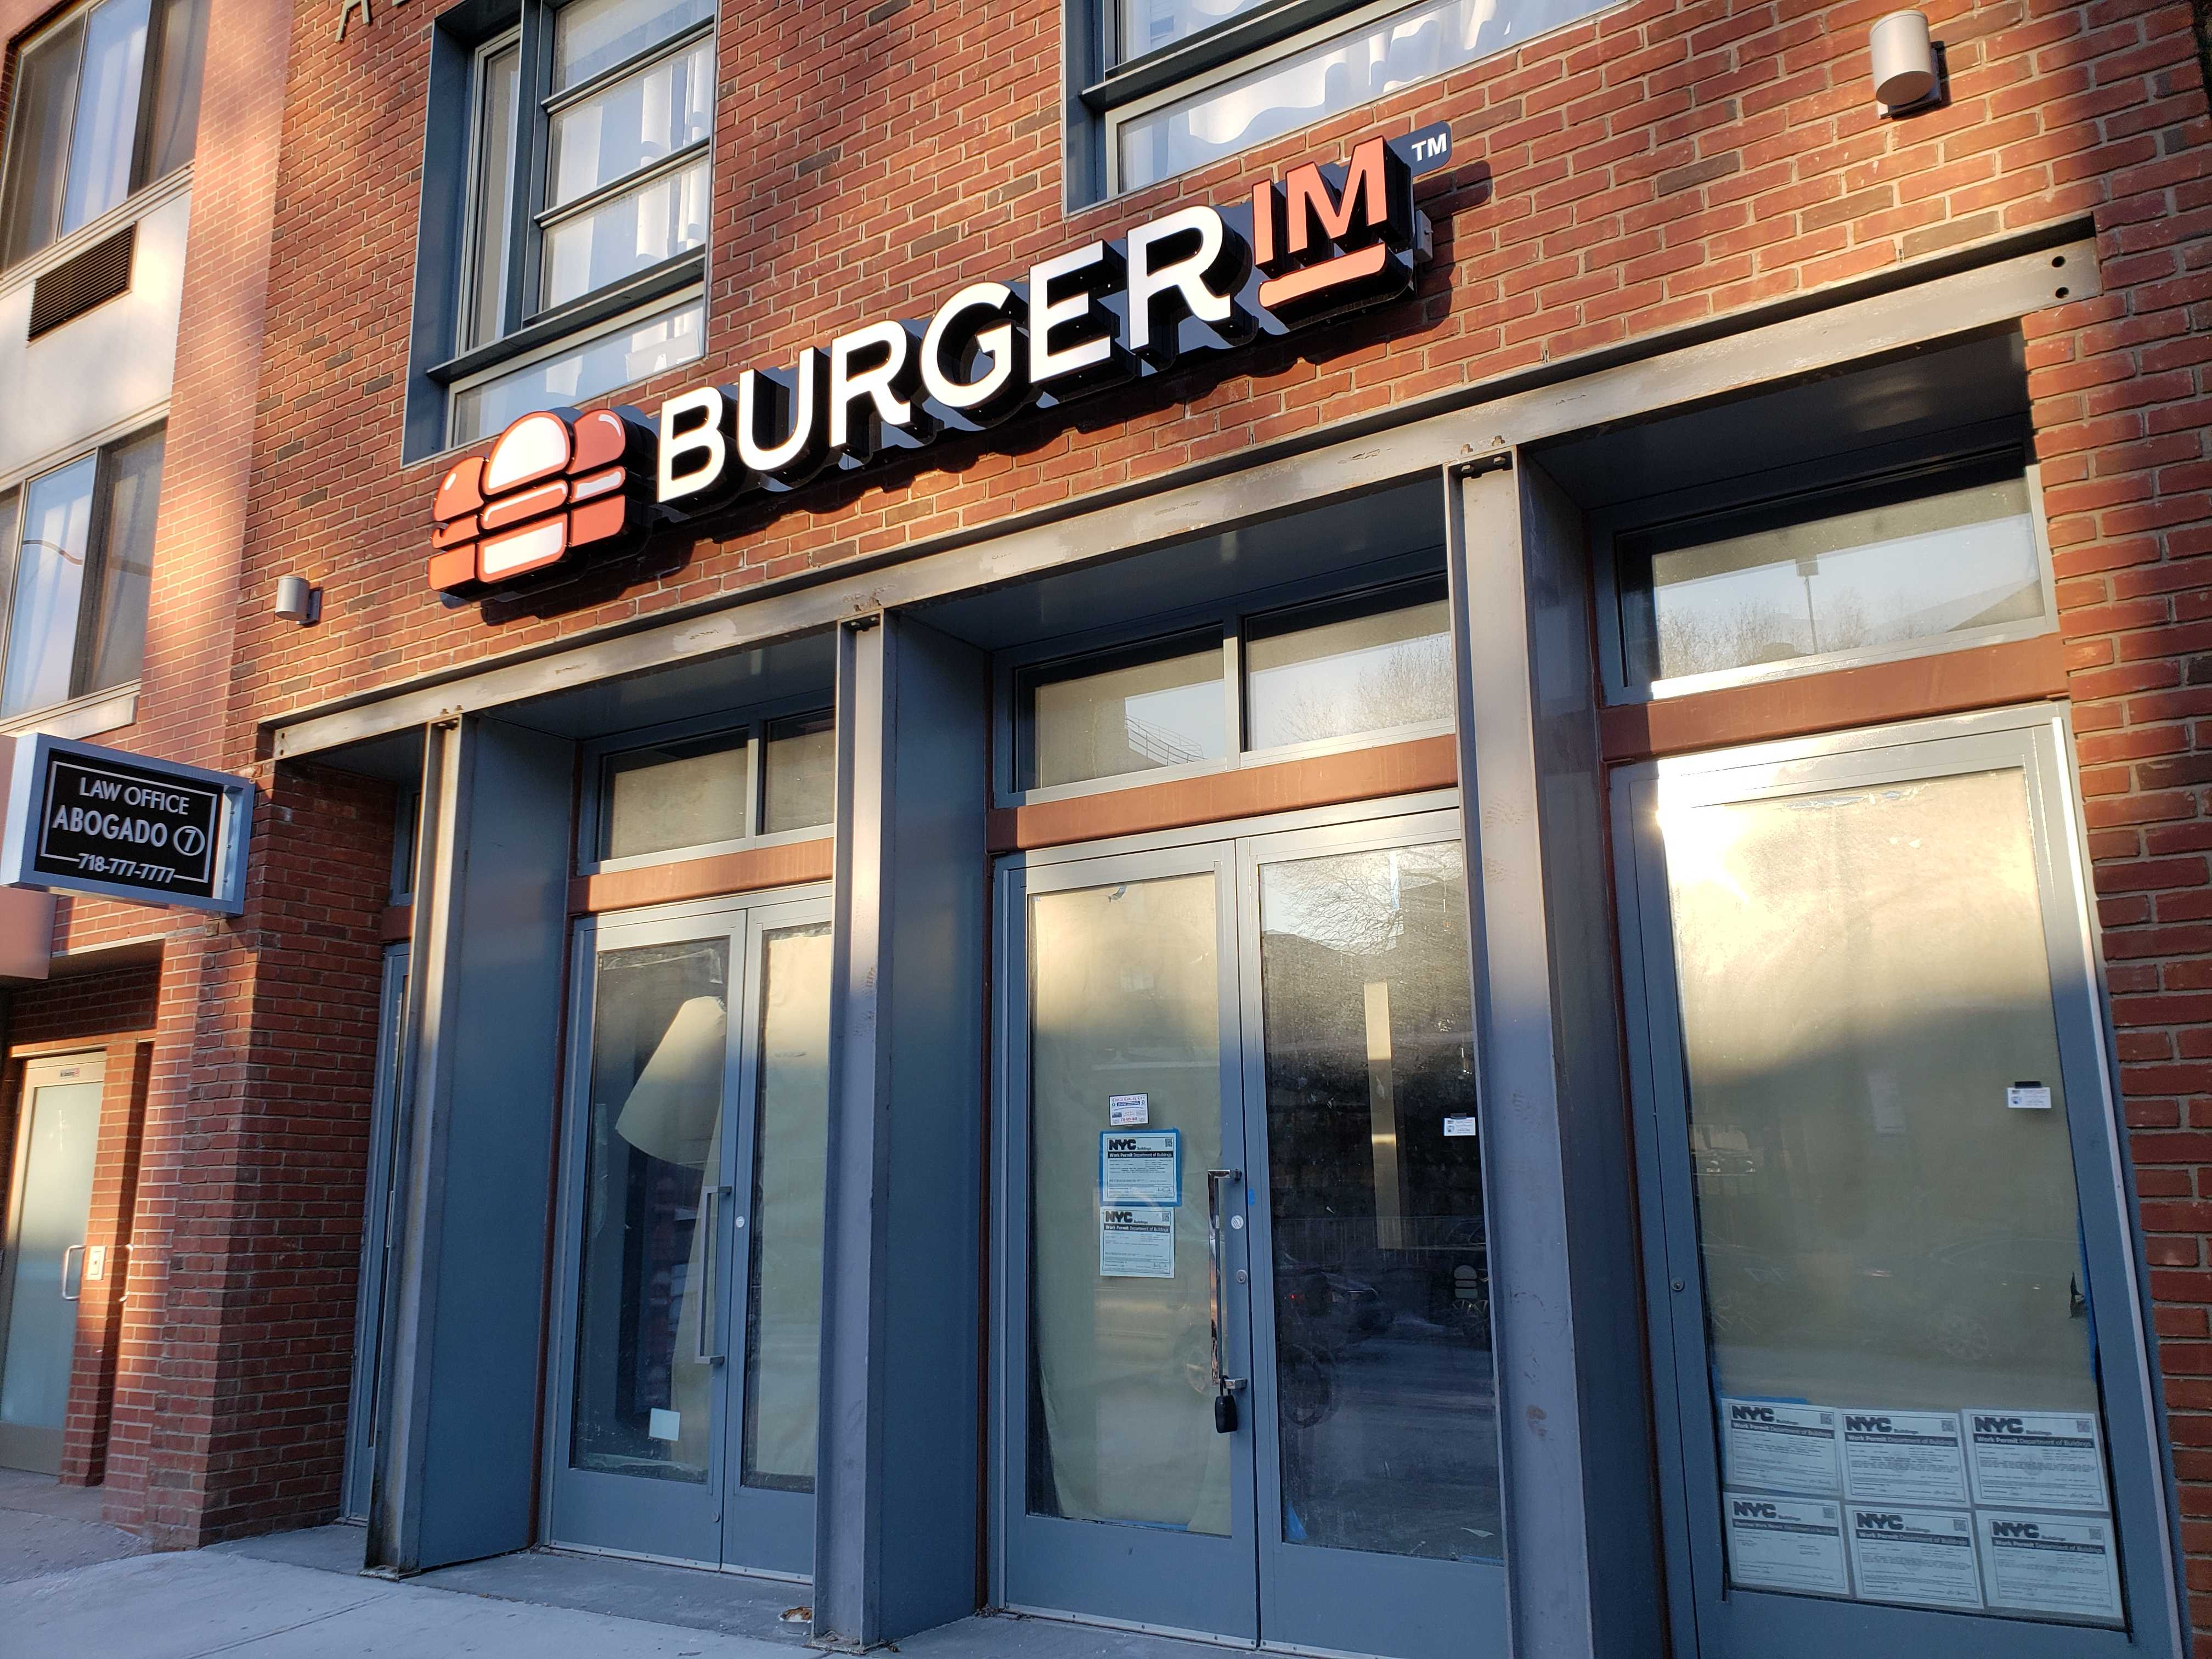 State of California orders Burgerim to refund franchise fees